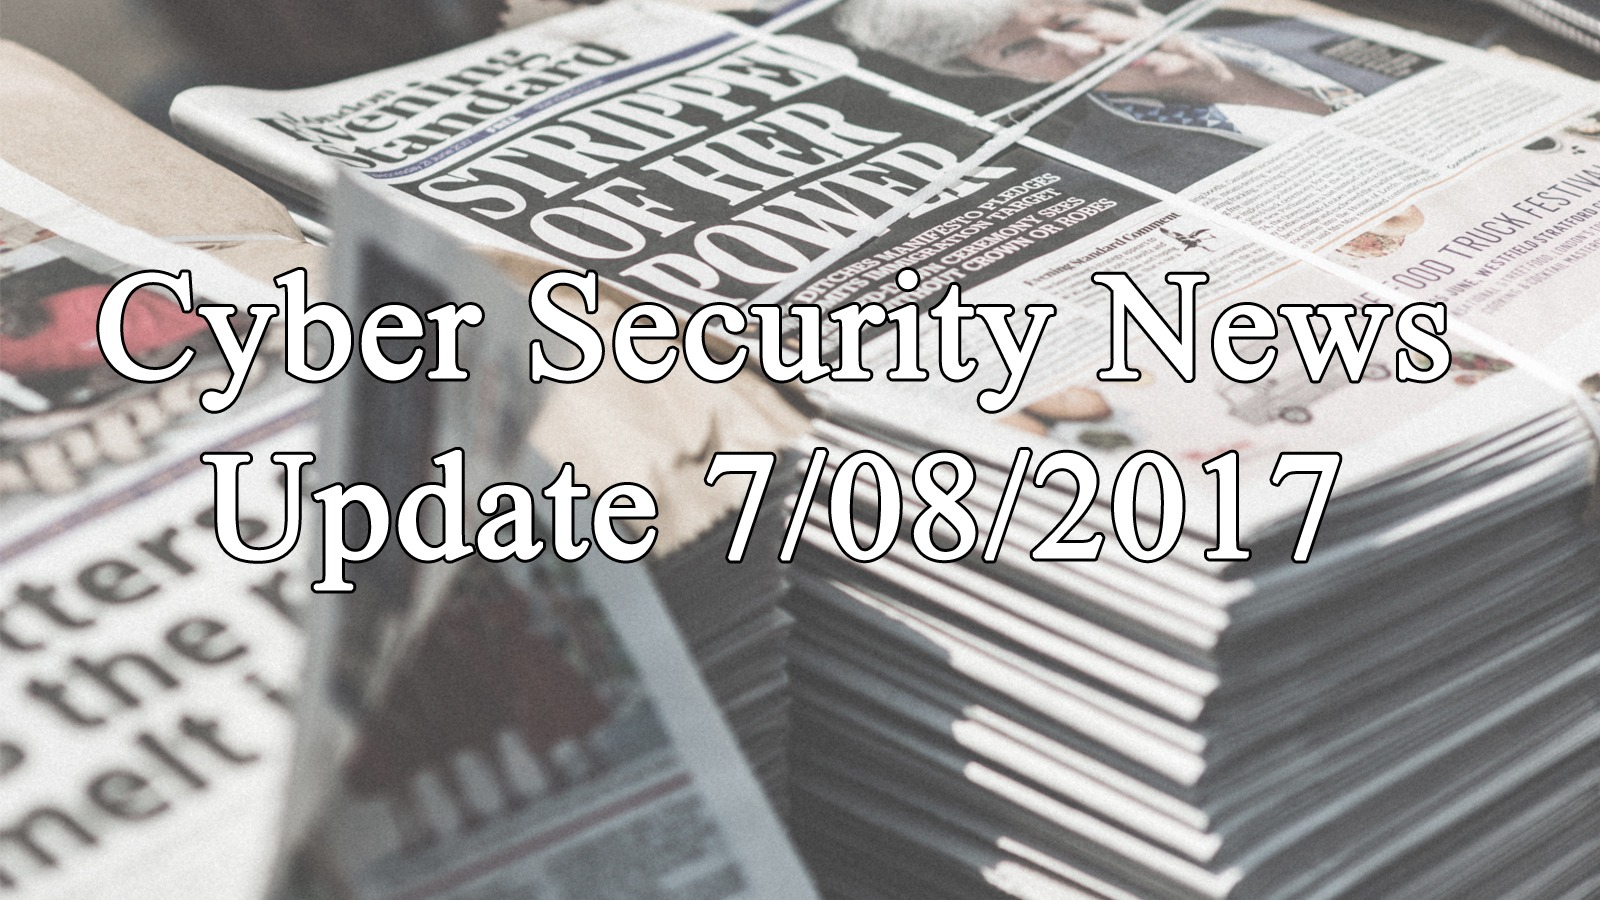 Cyber Security News Update 7082017  Askcybersecuritycom. Agile Software Engineering La Mirada Library. For Sale By Owner Mls Listing Reviews. Starting My Own Company Va Loan Contact Number. Student Loan Consolidation Credit Union. Bank Of America Virtual Terminal. Bankruptcy Lawyers In Minnesota. Certification Comptia Org Try To Stop Smoking. Portable Temperature Data Logger